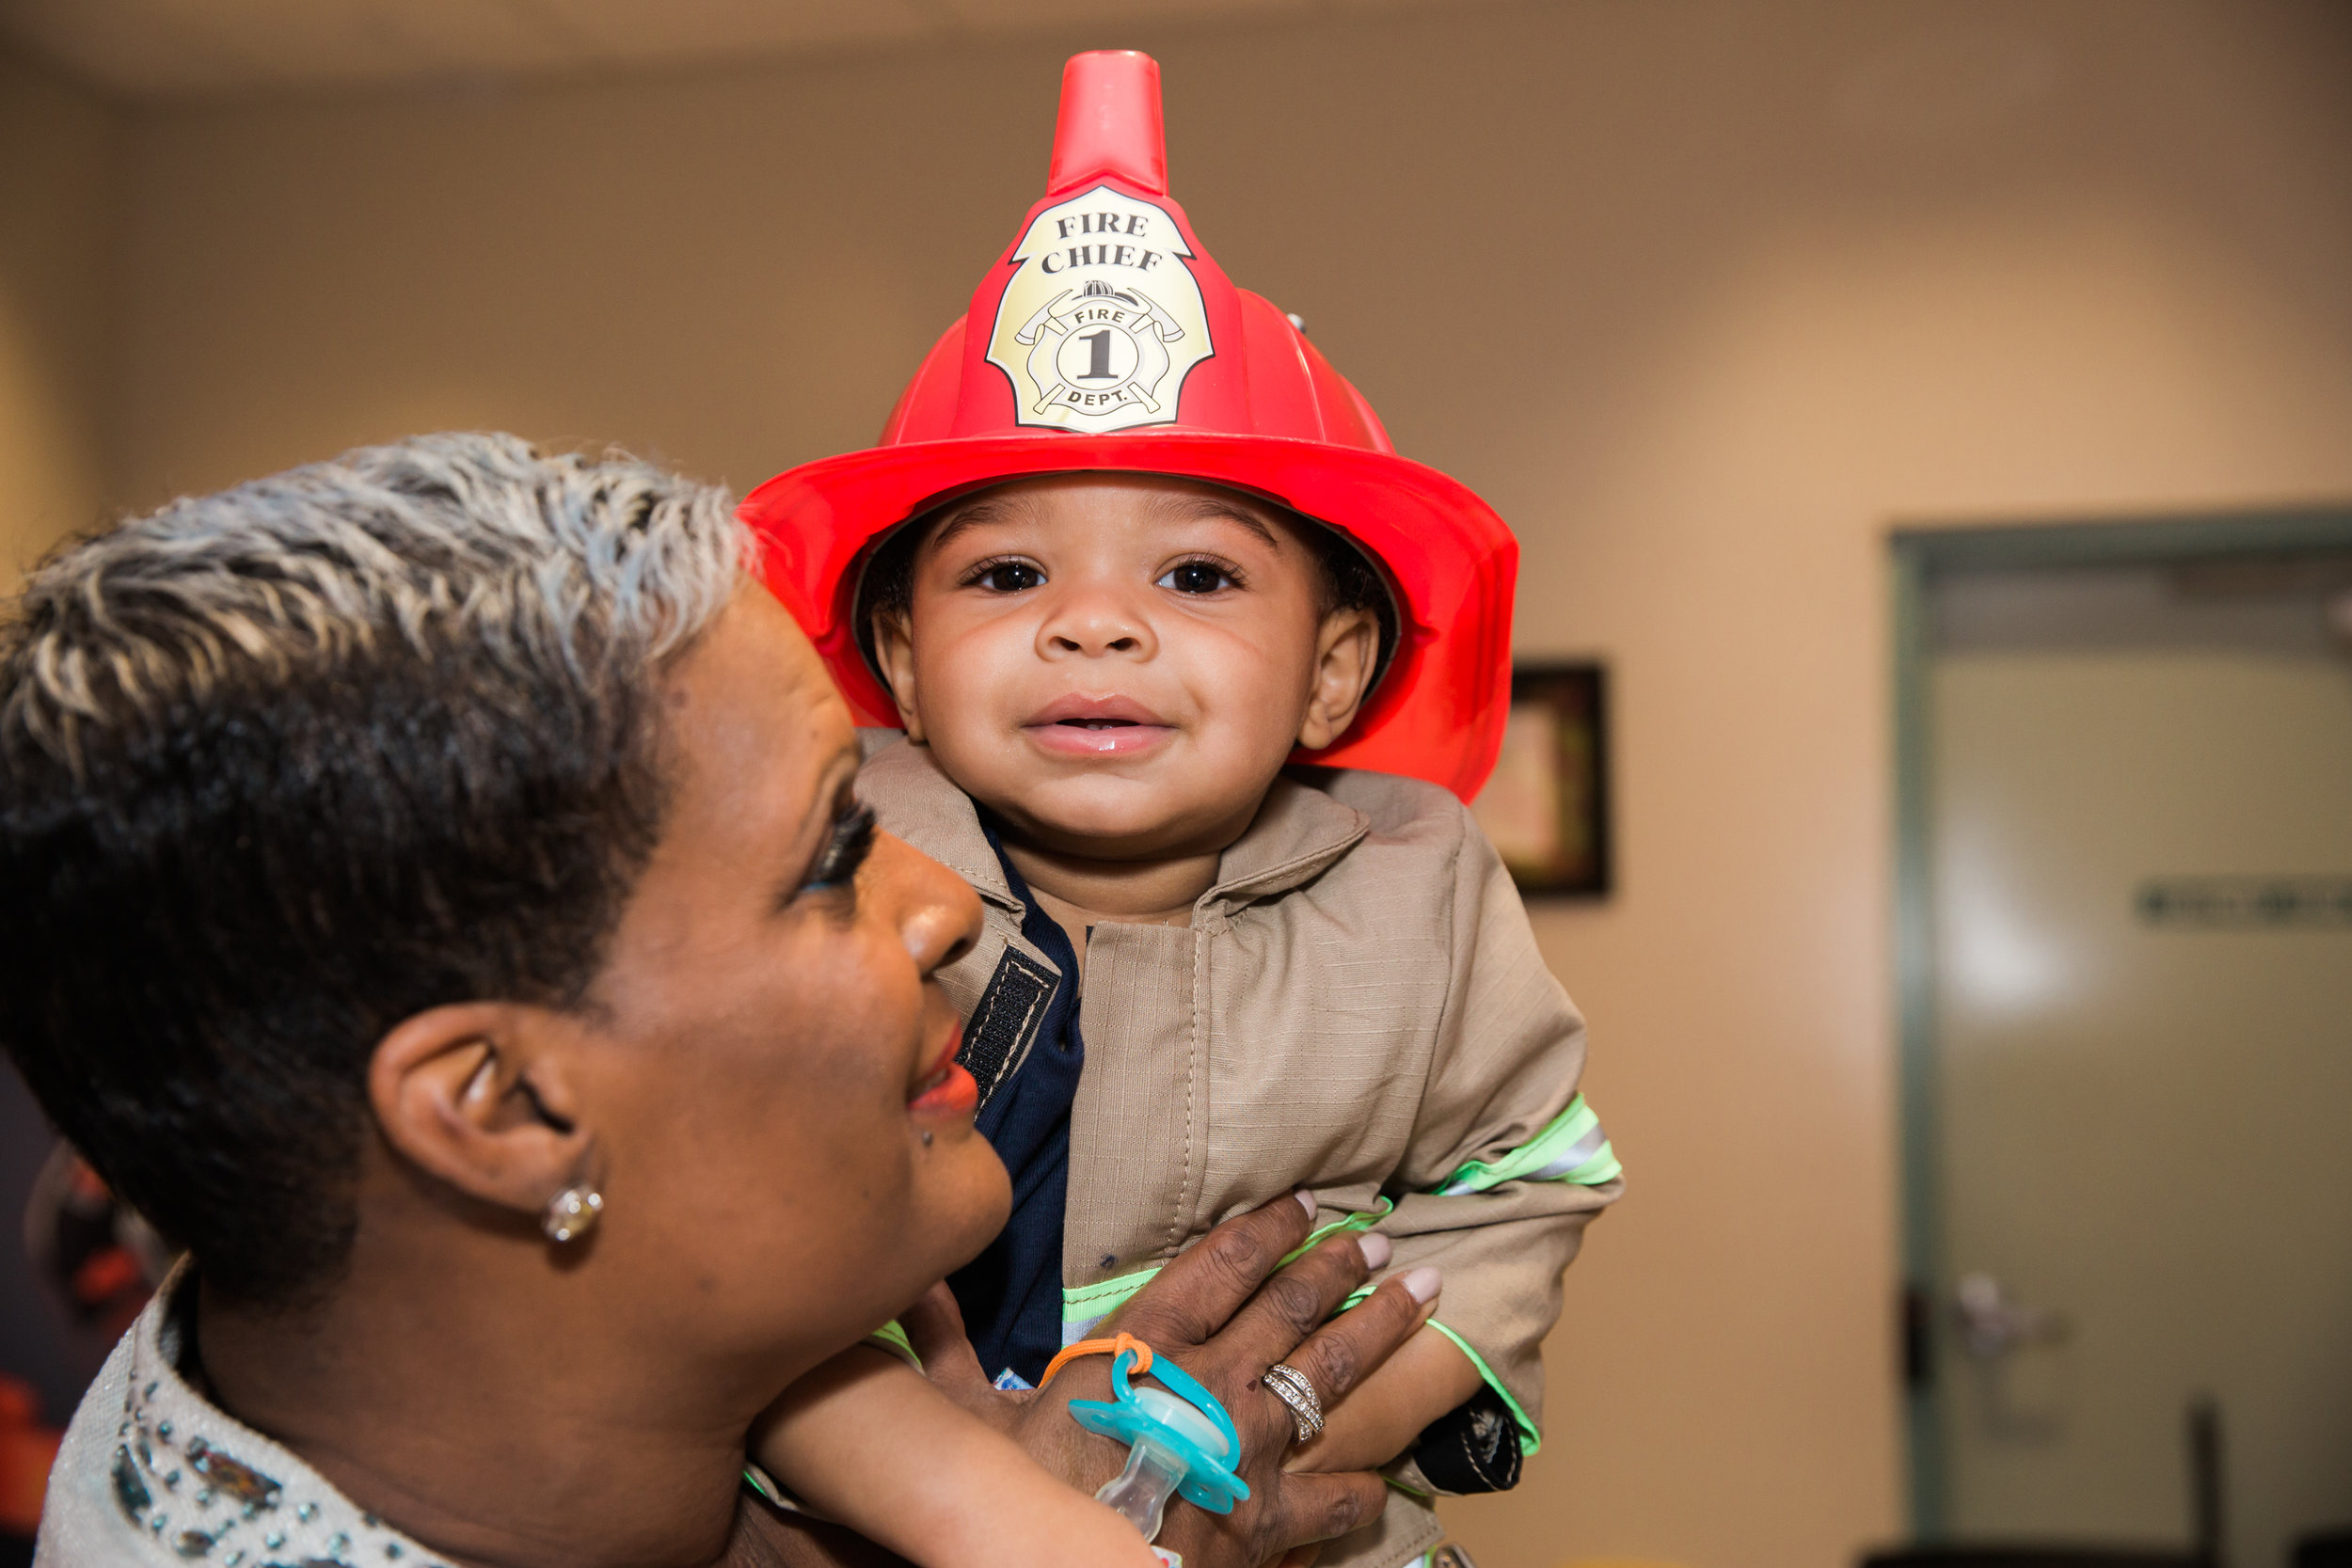 Fireman Birthday Party Ideas  Decorations Owings Mills Fire Department Maryland Family Photographers Megapixels Media Photography (39 of 55).jpg